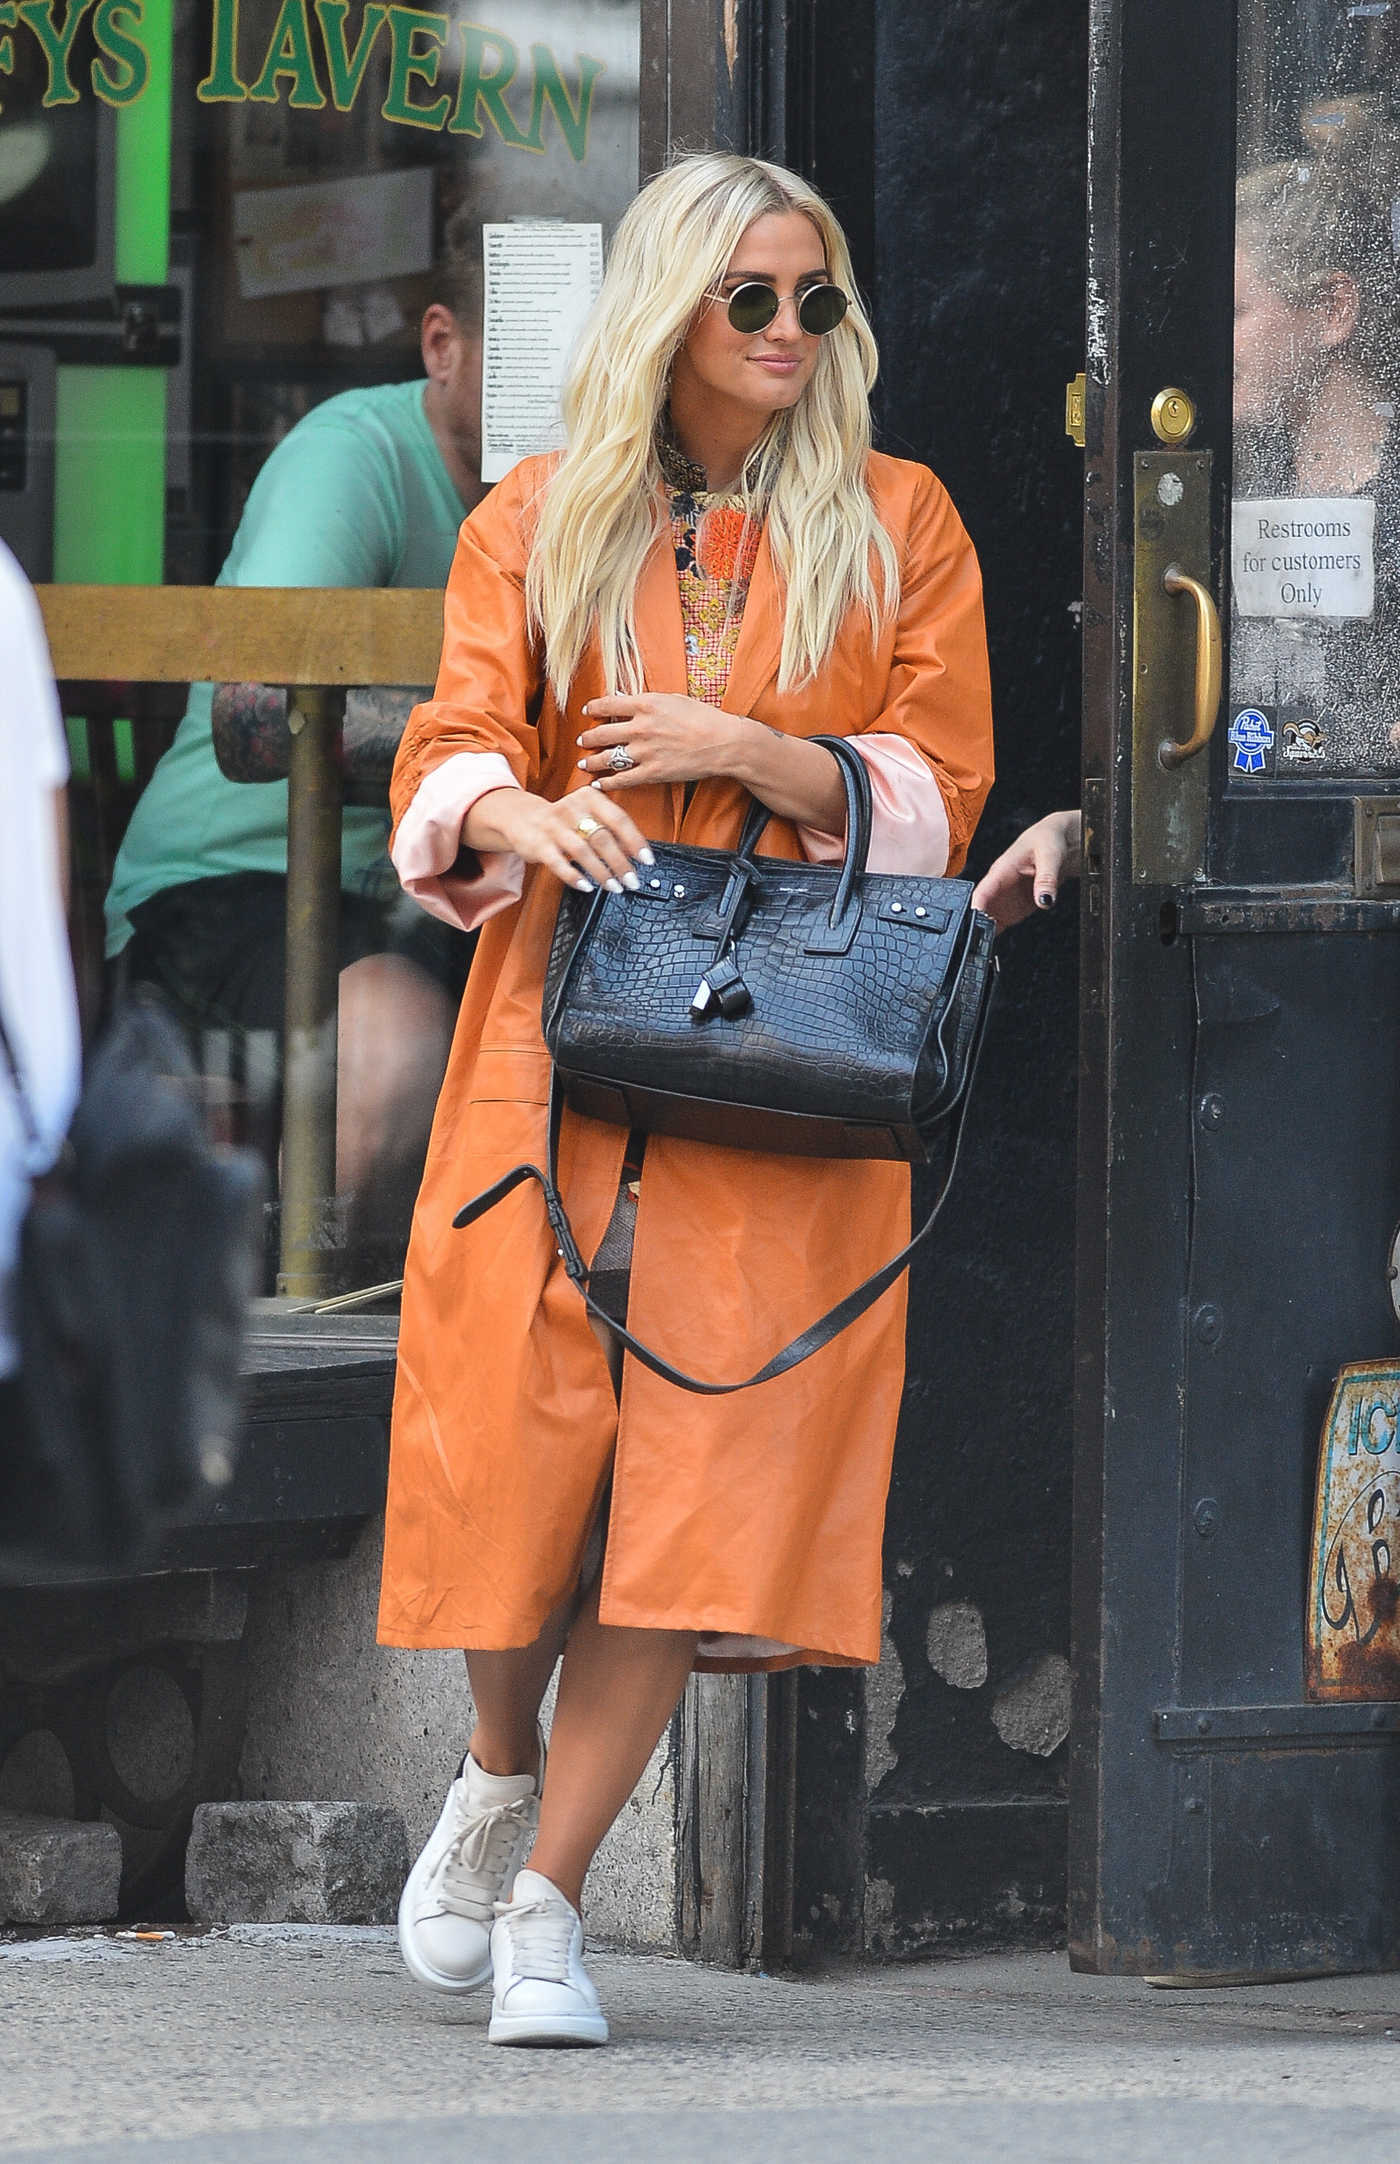 Ashlee Simpson in an Orange Trench Coat Was Seen Out in NYC 09/04/2018